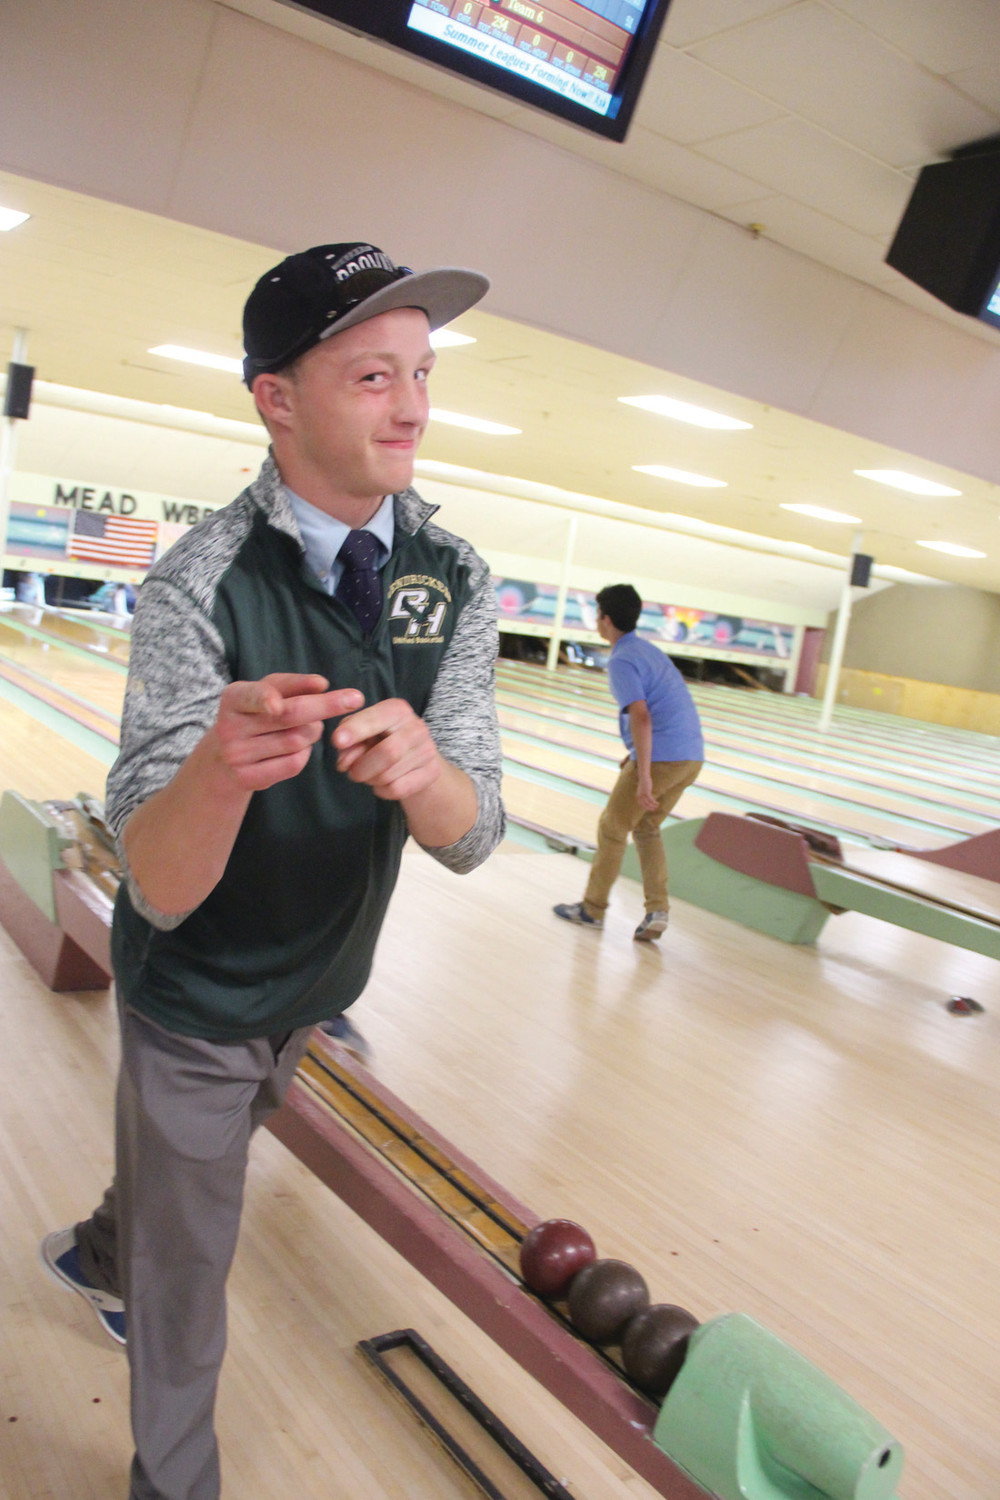 IT HAD TO BE GOOD: Steve Baker was happy to be bowling, whether he was getting strikes or not.